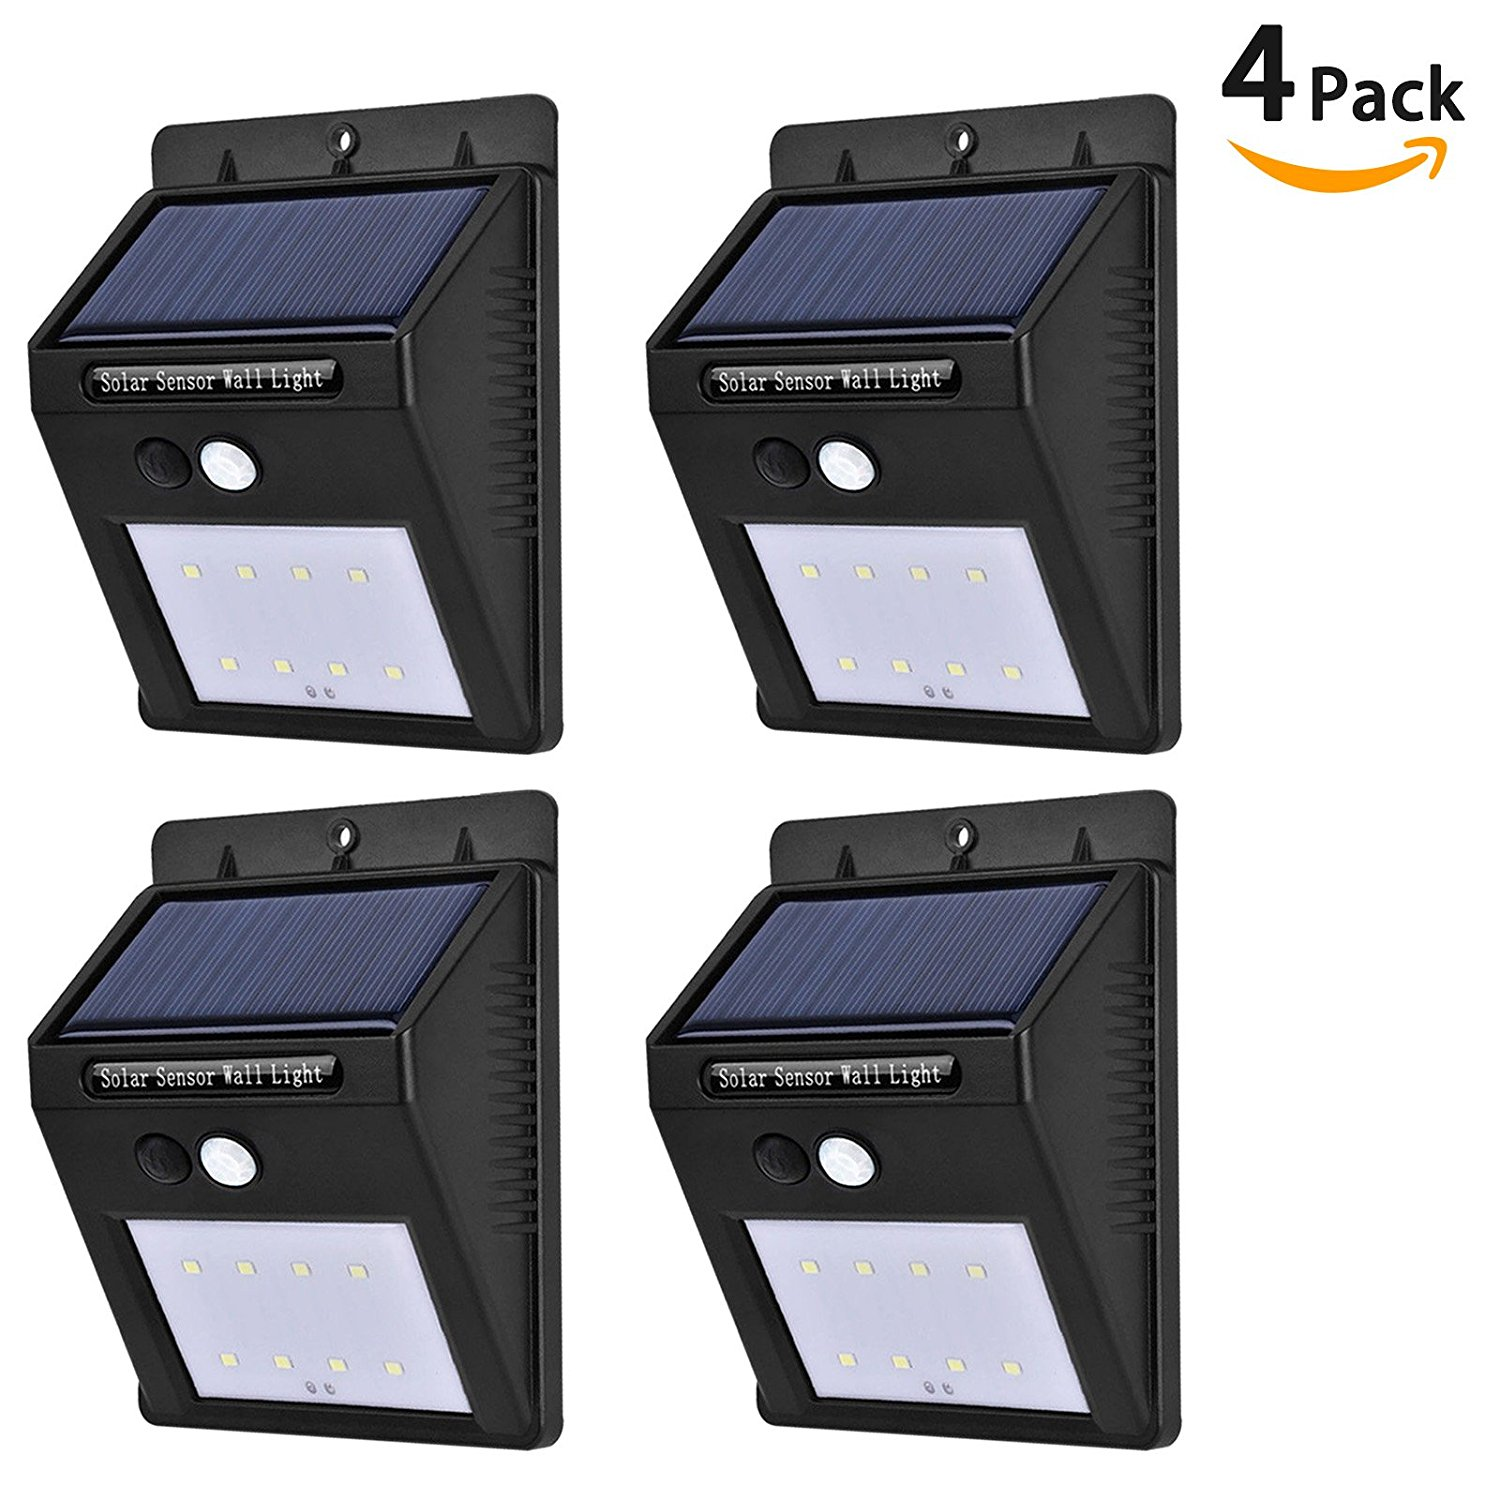 [4-Pack] Solar Powered Motion Sensor Lights, LinkStyle 8 LEDs Outdoor Solar Light Weatherproof Security Wall Light with 2 Intelligent Modes for Garden Yard Patio Deck Wall Driveway Steps- Black